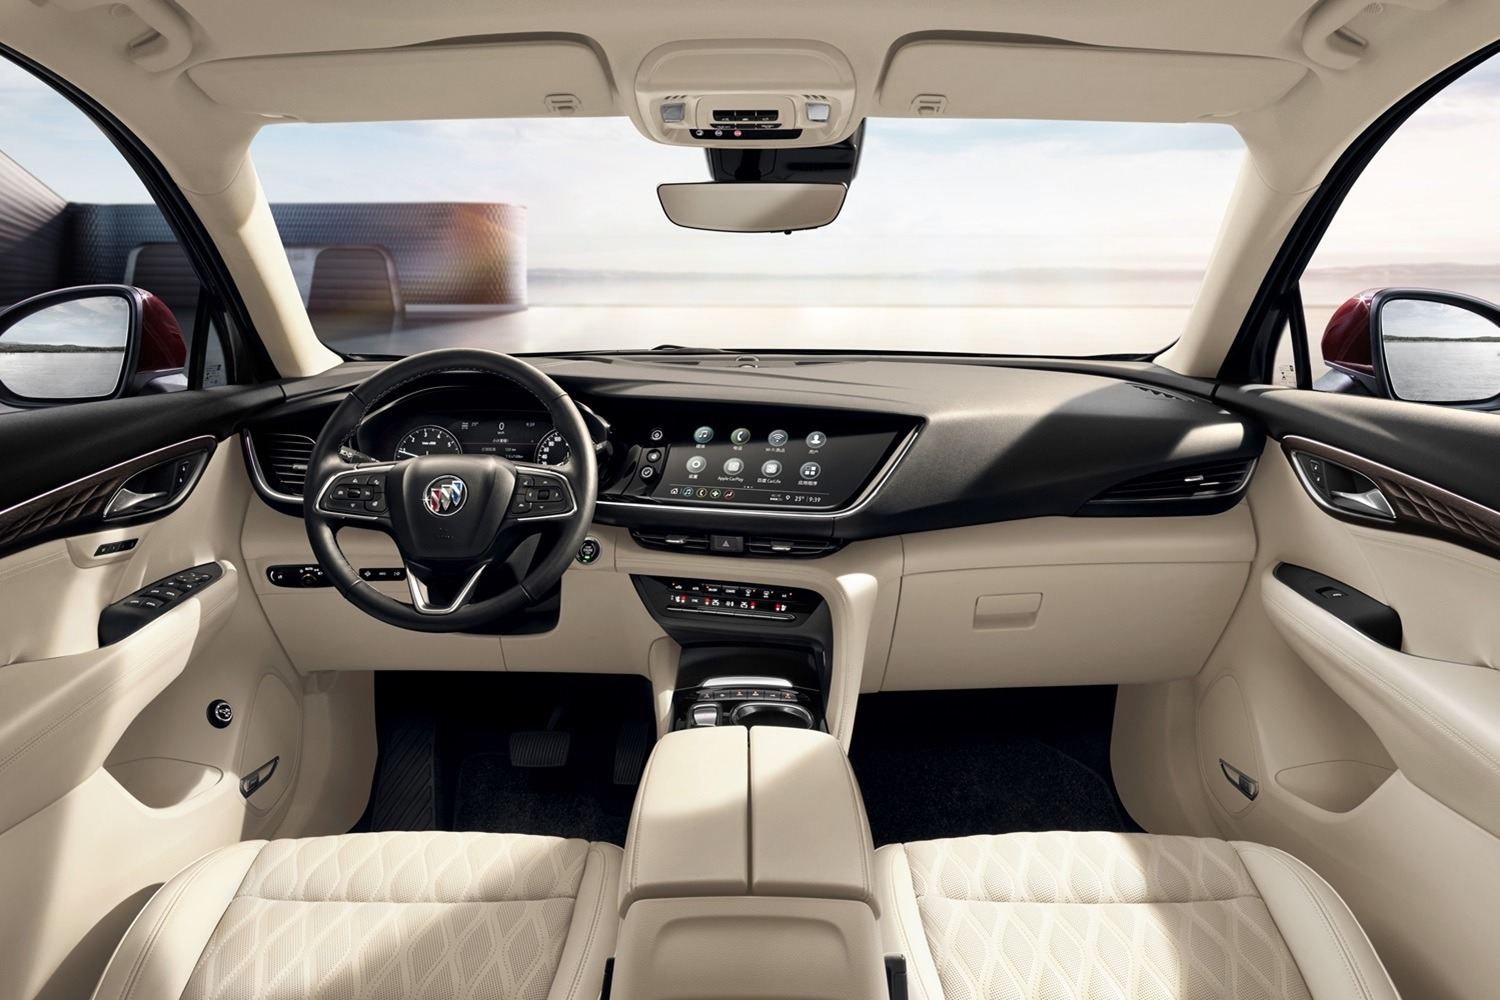 2021 Buick Envision Interior Revealed In Brand New Photos 2021 Buick Riviera Interior, Concept, Headlights